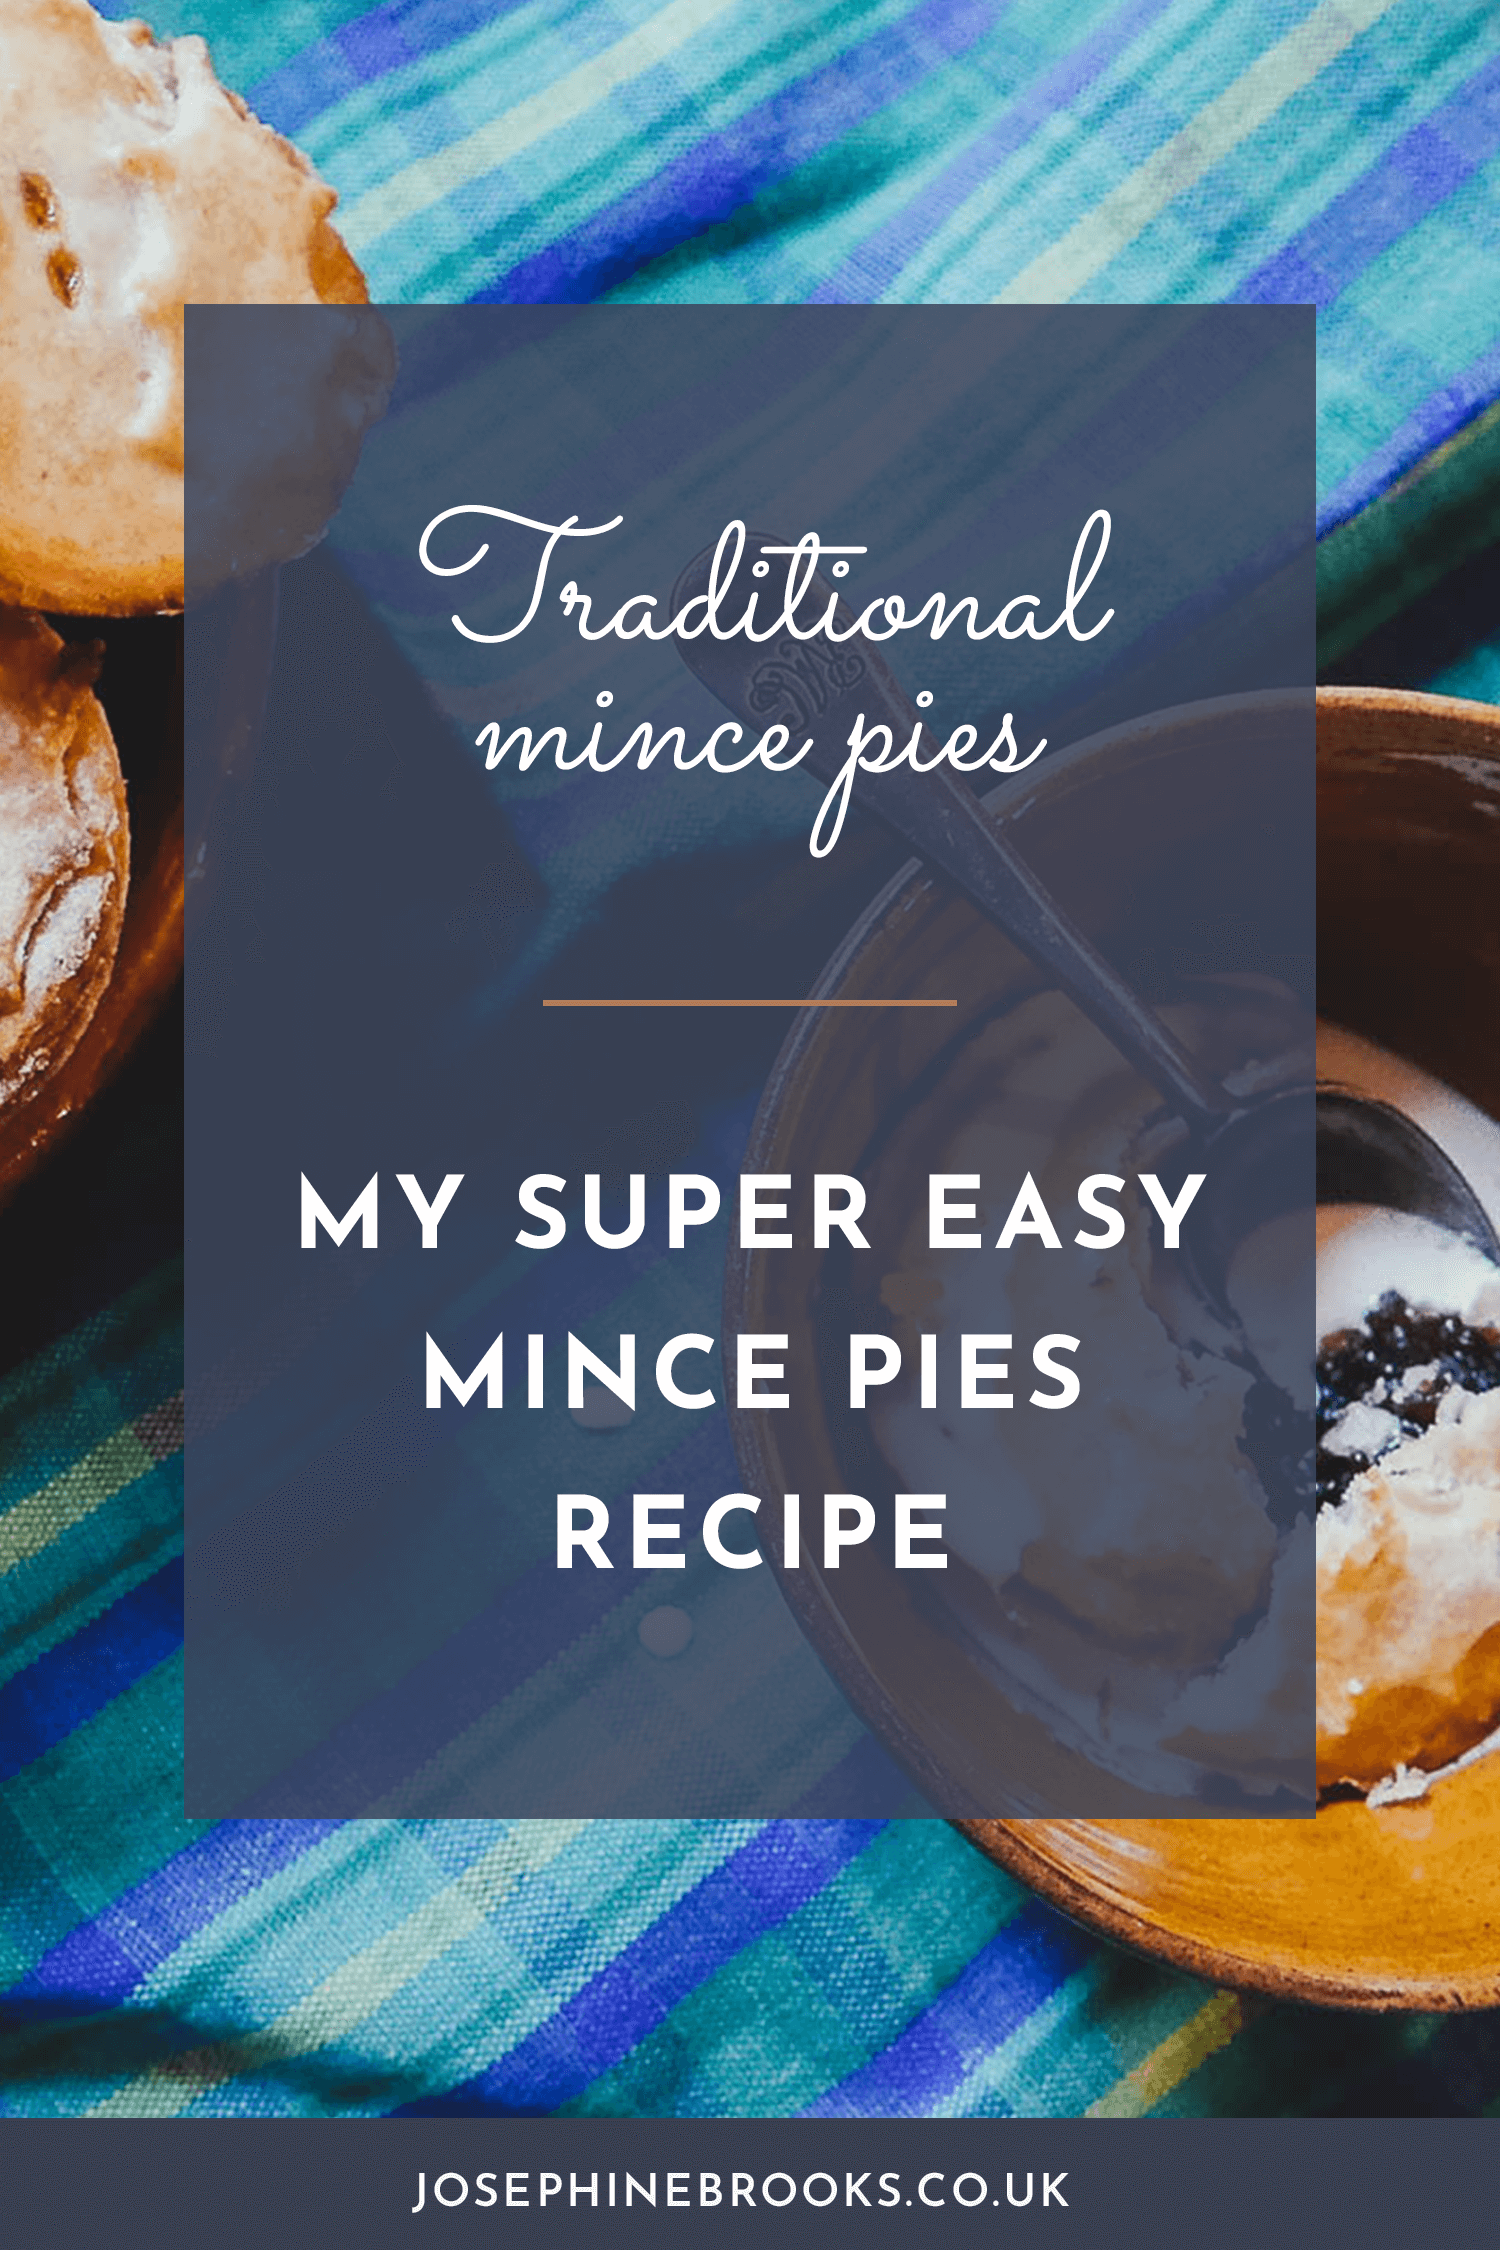 Mince pies recipe for traditional mince pies   Josephine Brooks